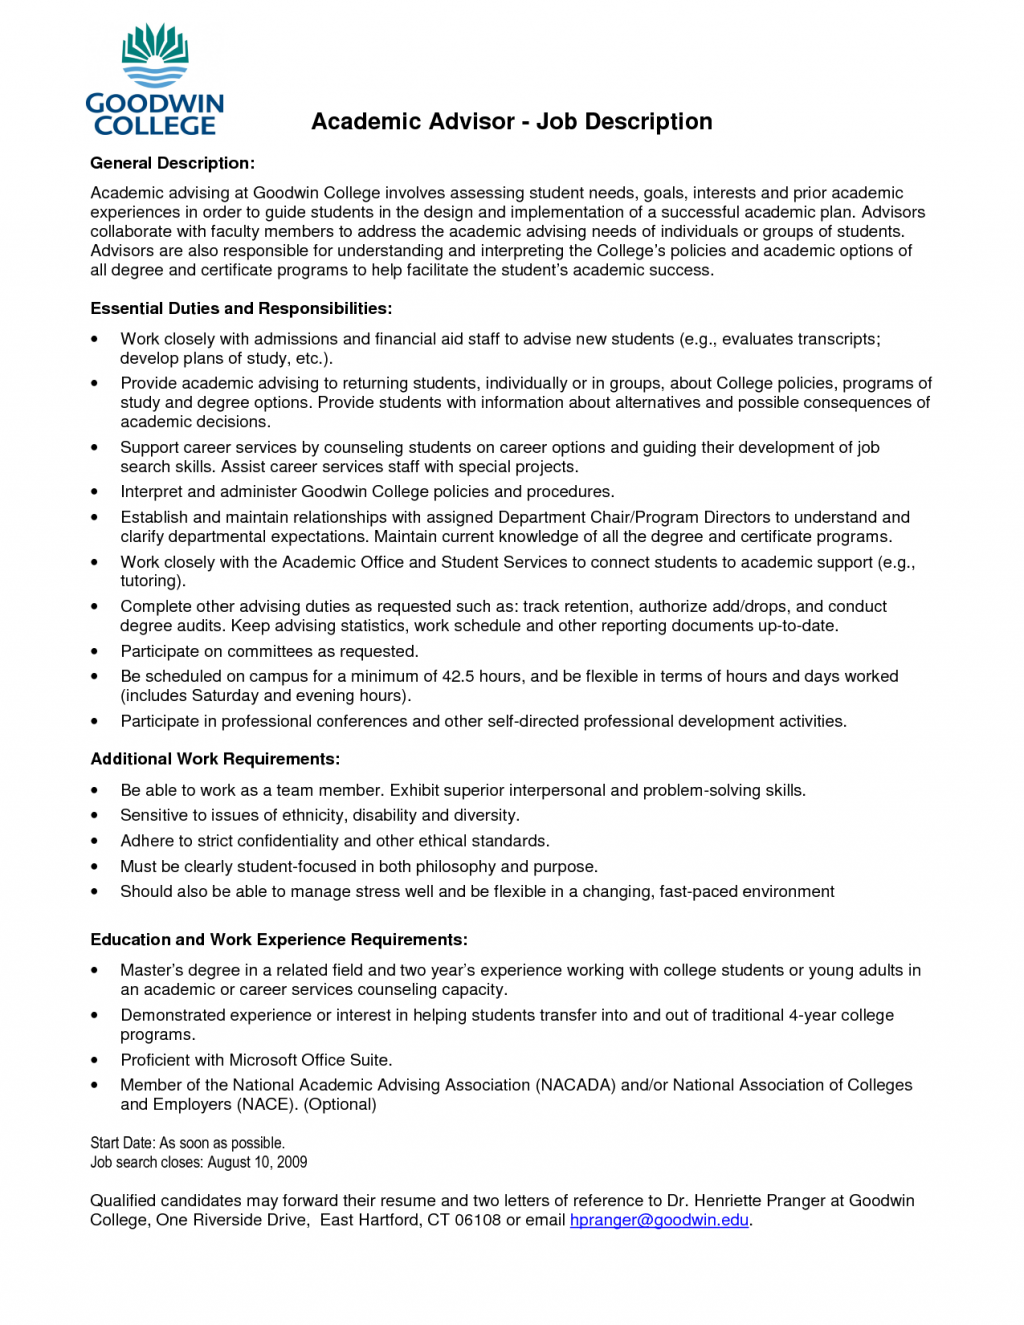 Resume Examples Youtube Examples Resume Resumeexamples Youtube Resume Examples Sample Resume Good Resume Examples